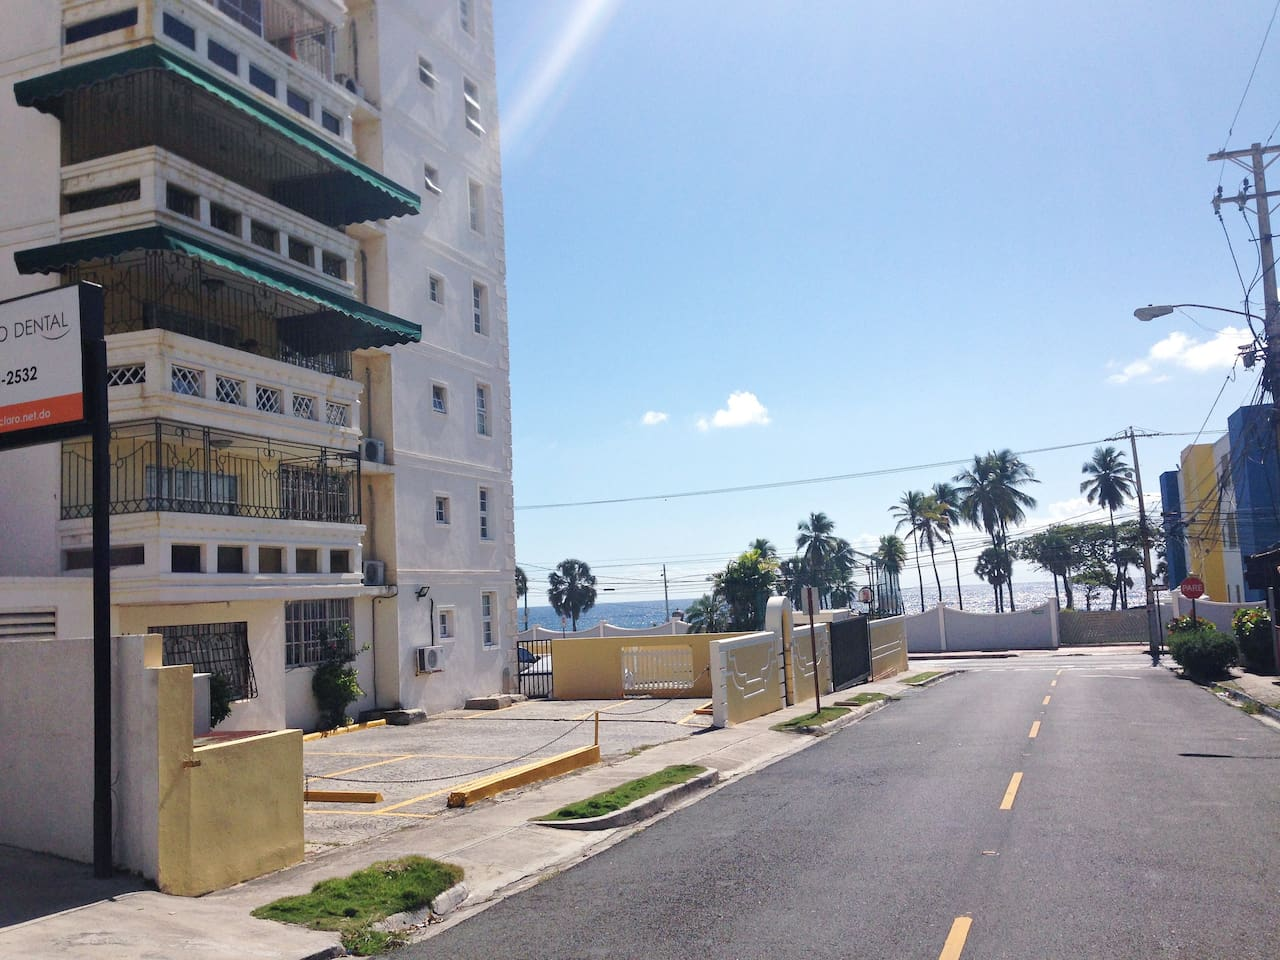 Beautiful Location of Building in front of Caribbean Sea and convinient center city location, fresh sea air !